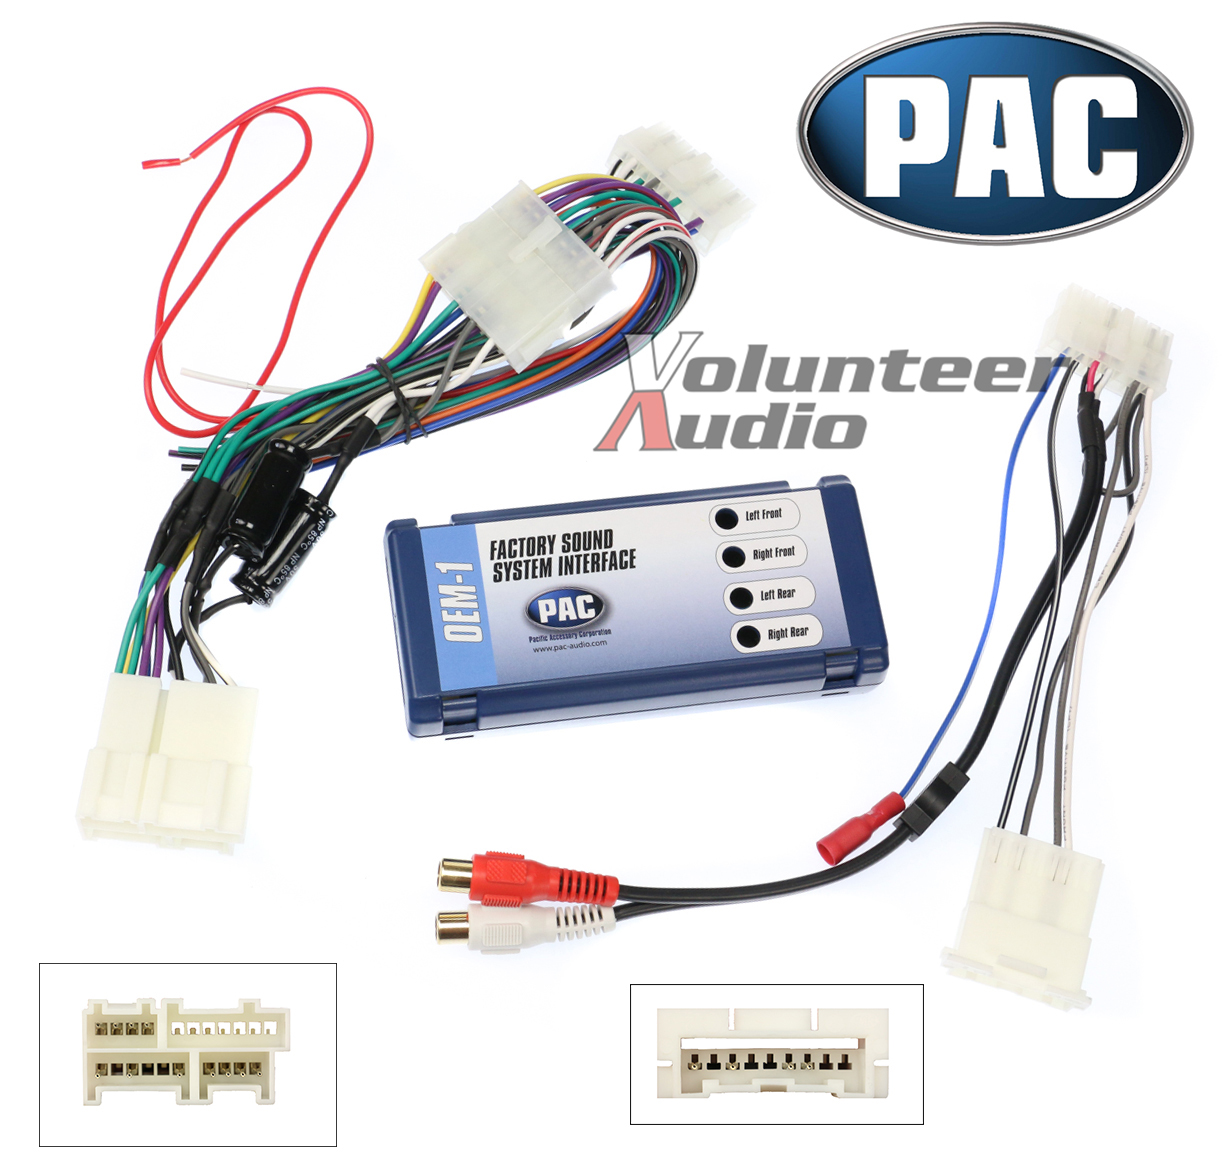 How to install a wiring harness how to install a wiring harness in a car how to install metra wiring harness trailer harness diagram how to install a wiring harness for a trailer hitch how to install a wiring harness car stereo